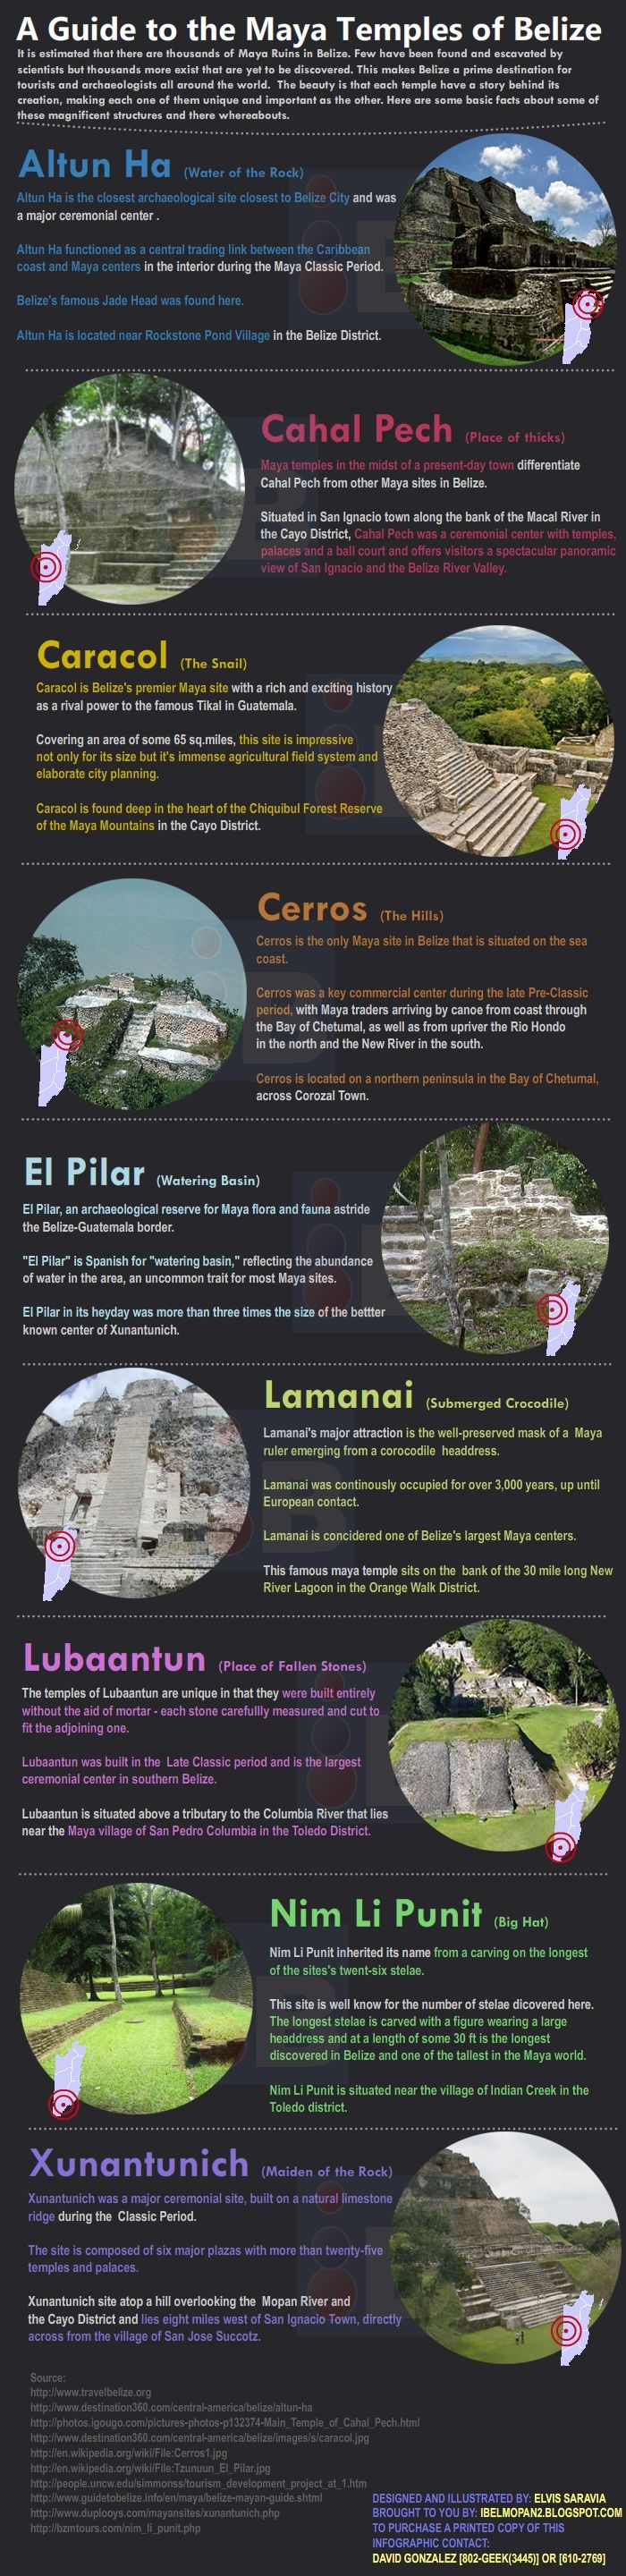 A Guide to the Maya Temples of Belize ~ We were at Altun Ha